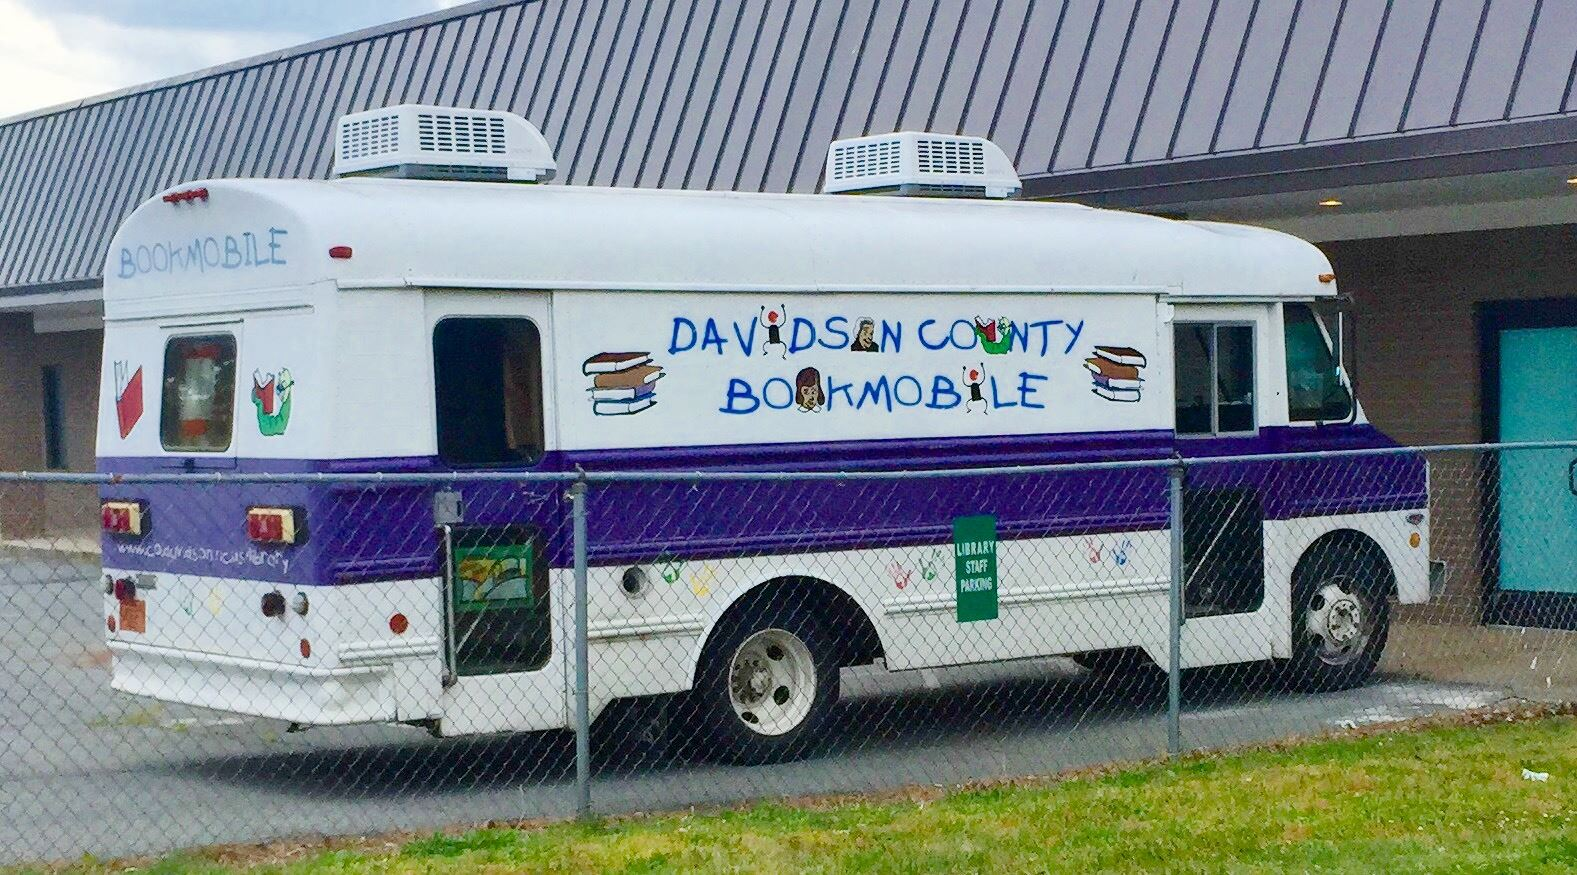 Book Mobile Opens in new window